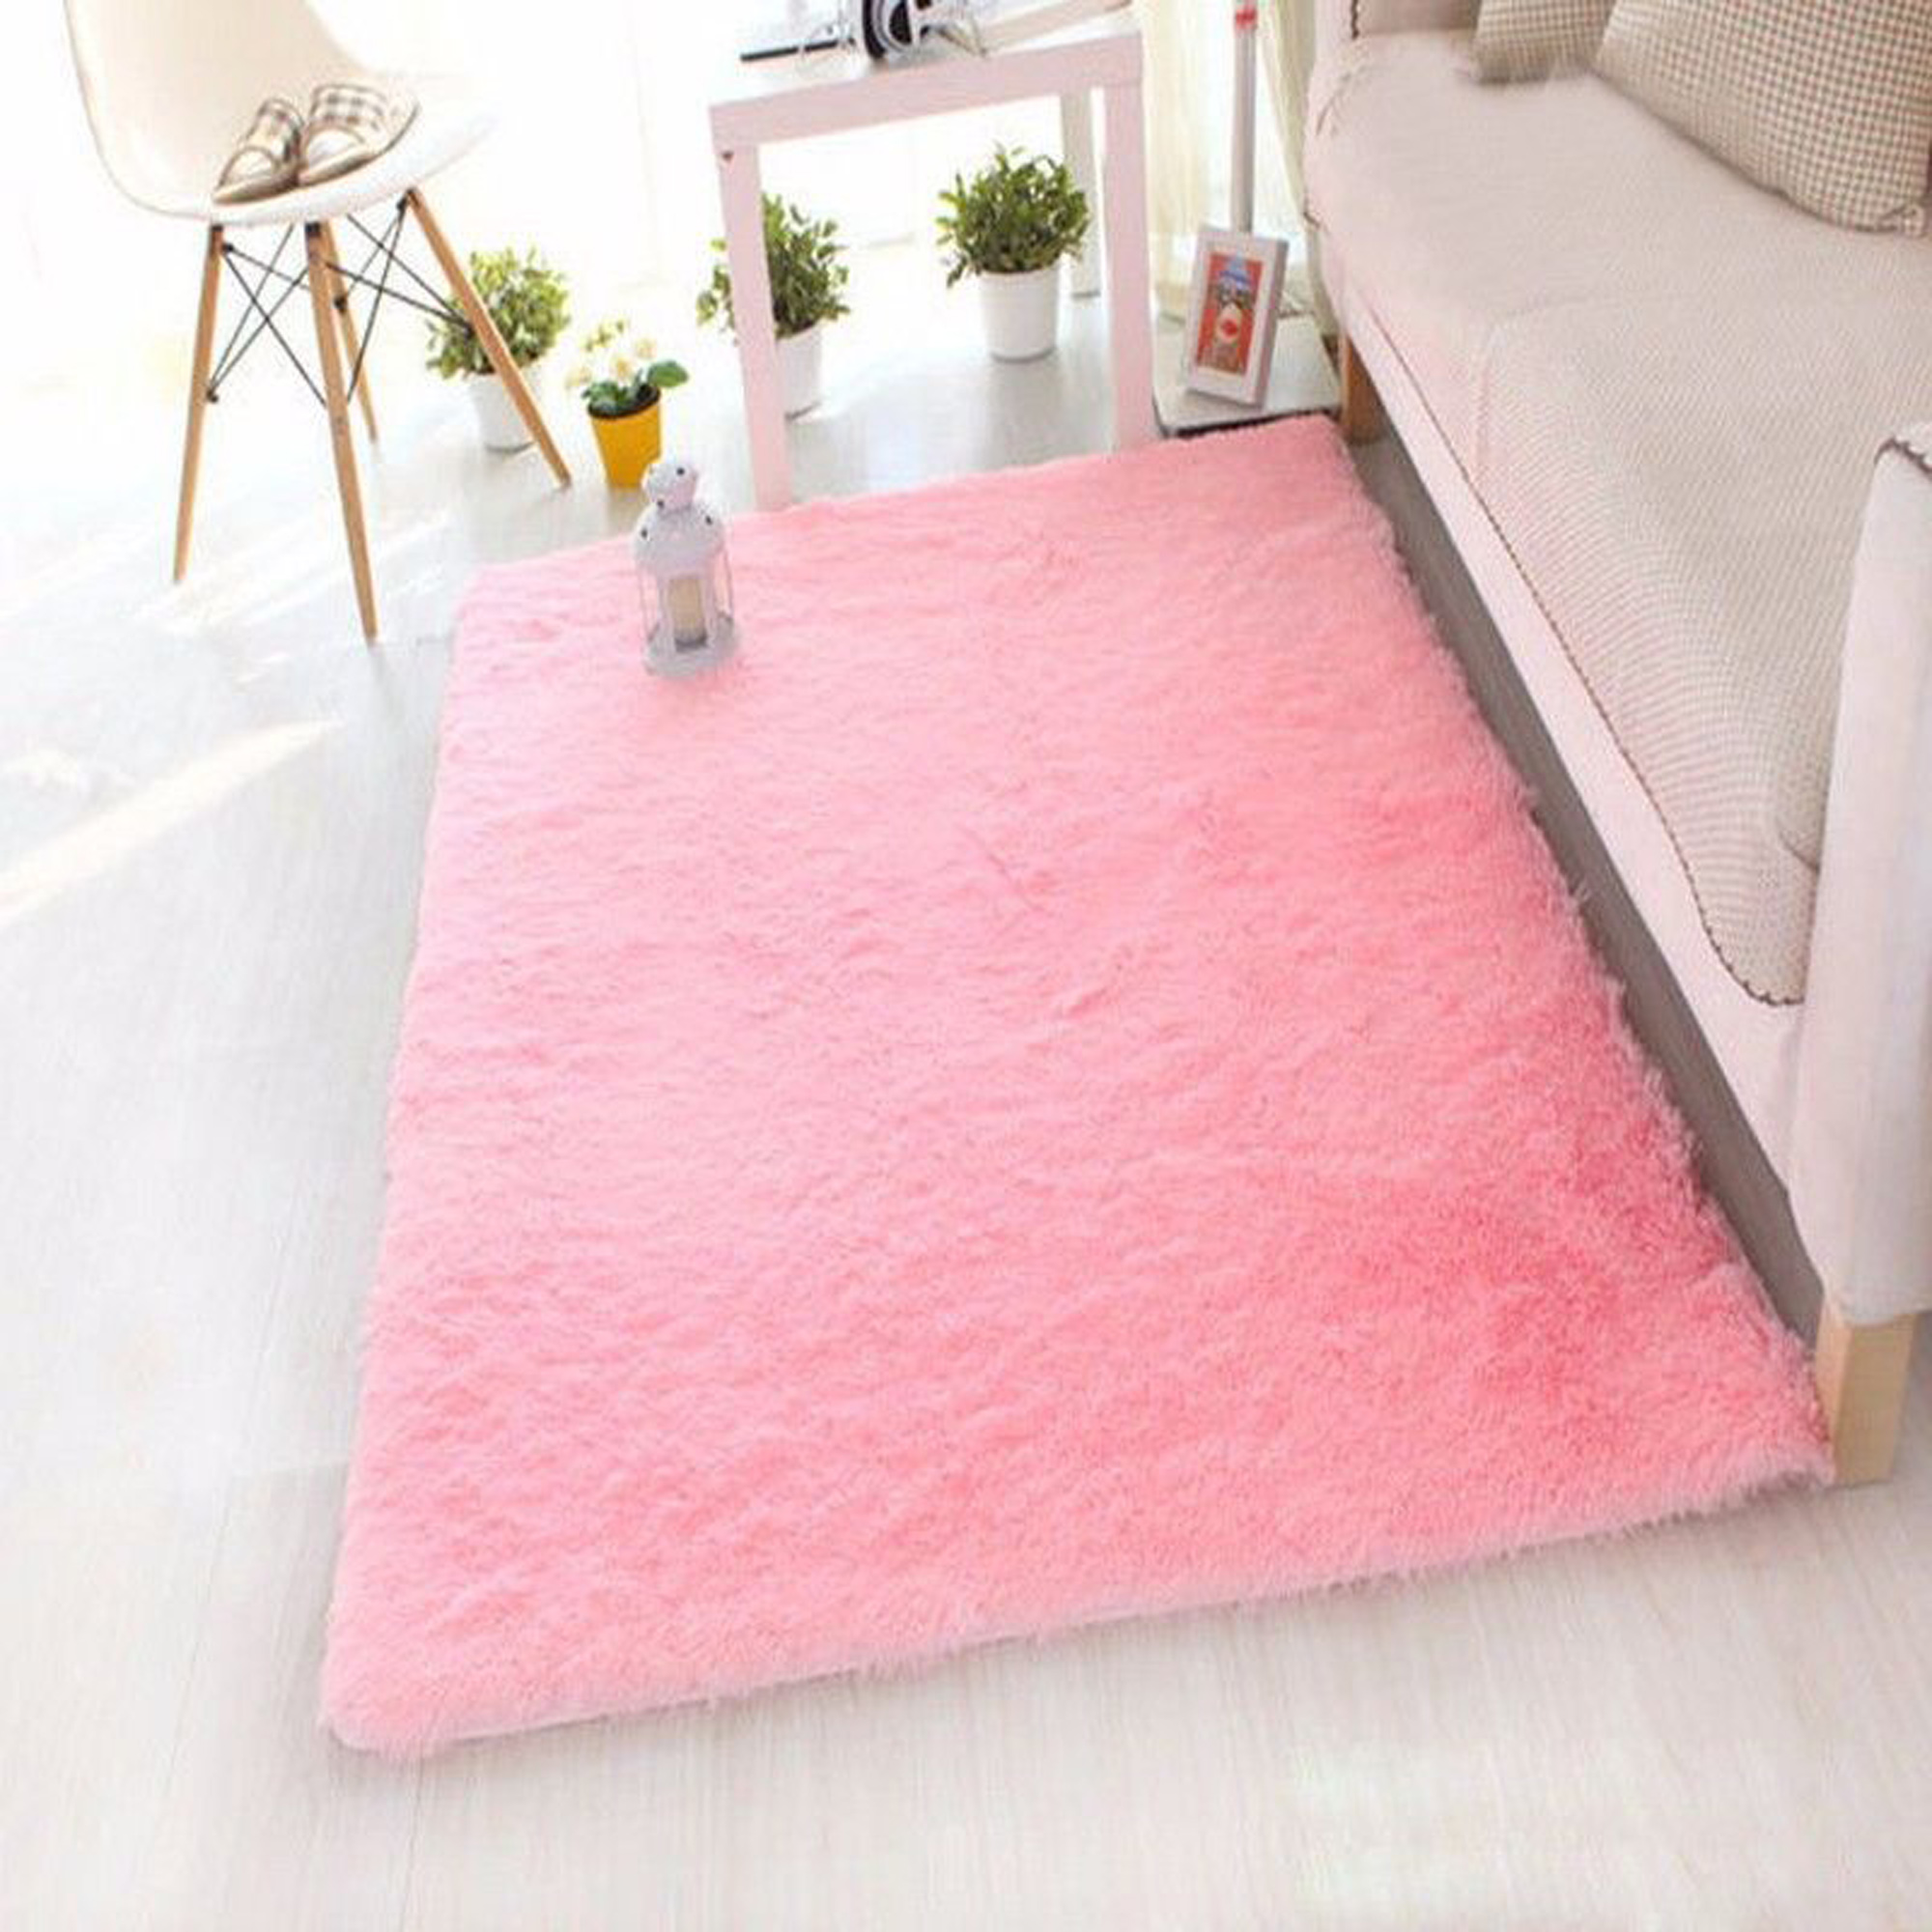 NK HOME Ultra Soft Rugs Rectangular Area Mat Fluffy Carpet Fashion Color Fluffy Carpet Anti-slip Nursery Rug for Bedroom Girls Room Home Decoration Grey Blue Pink